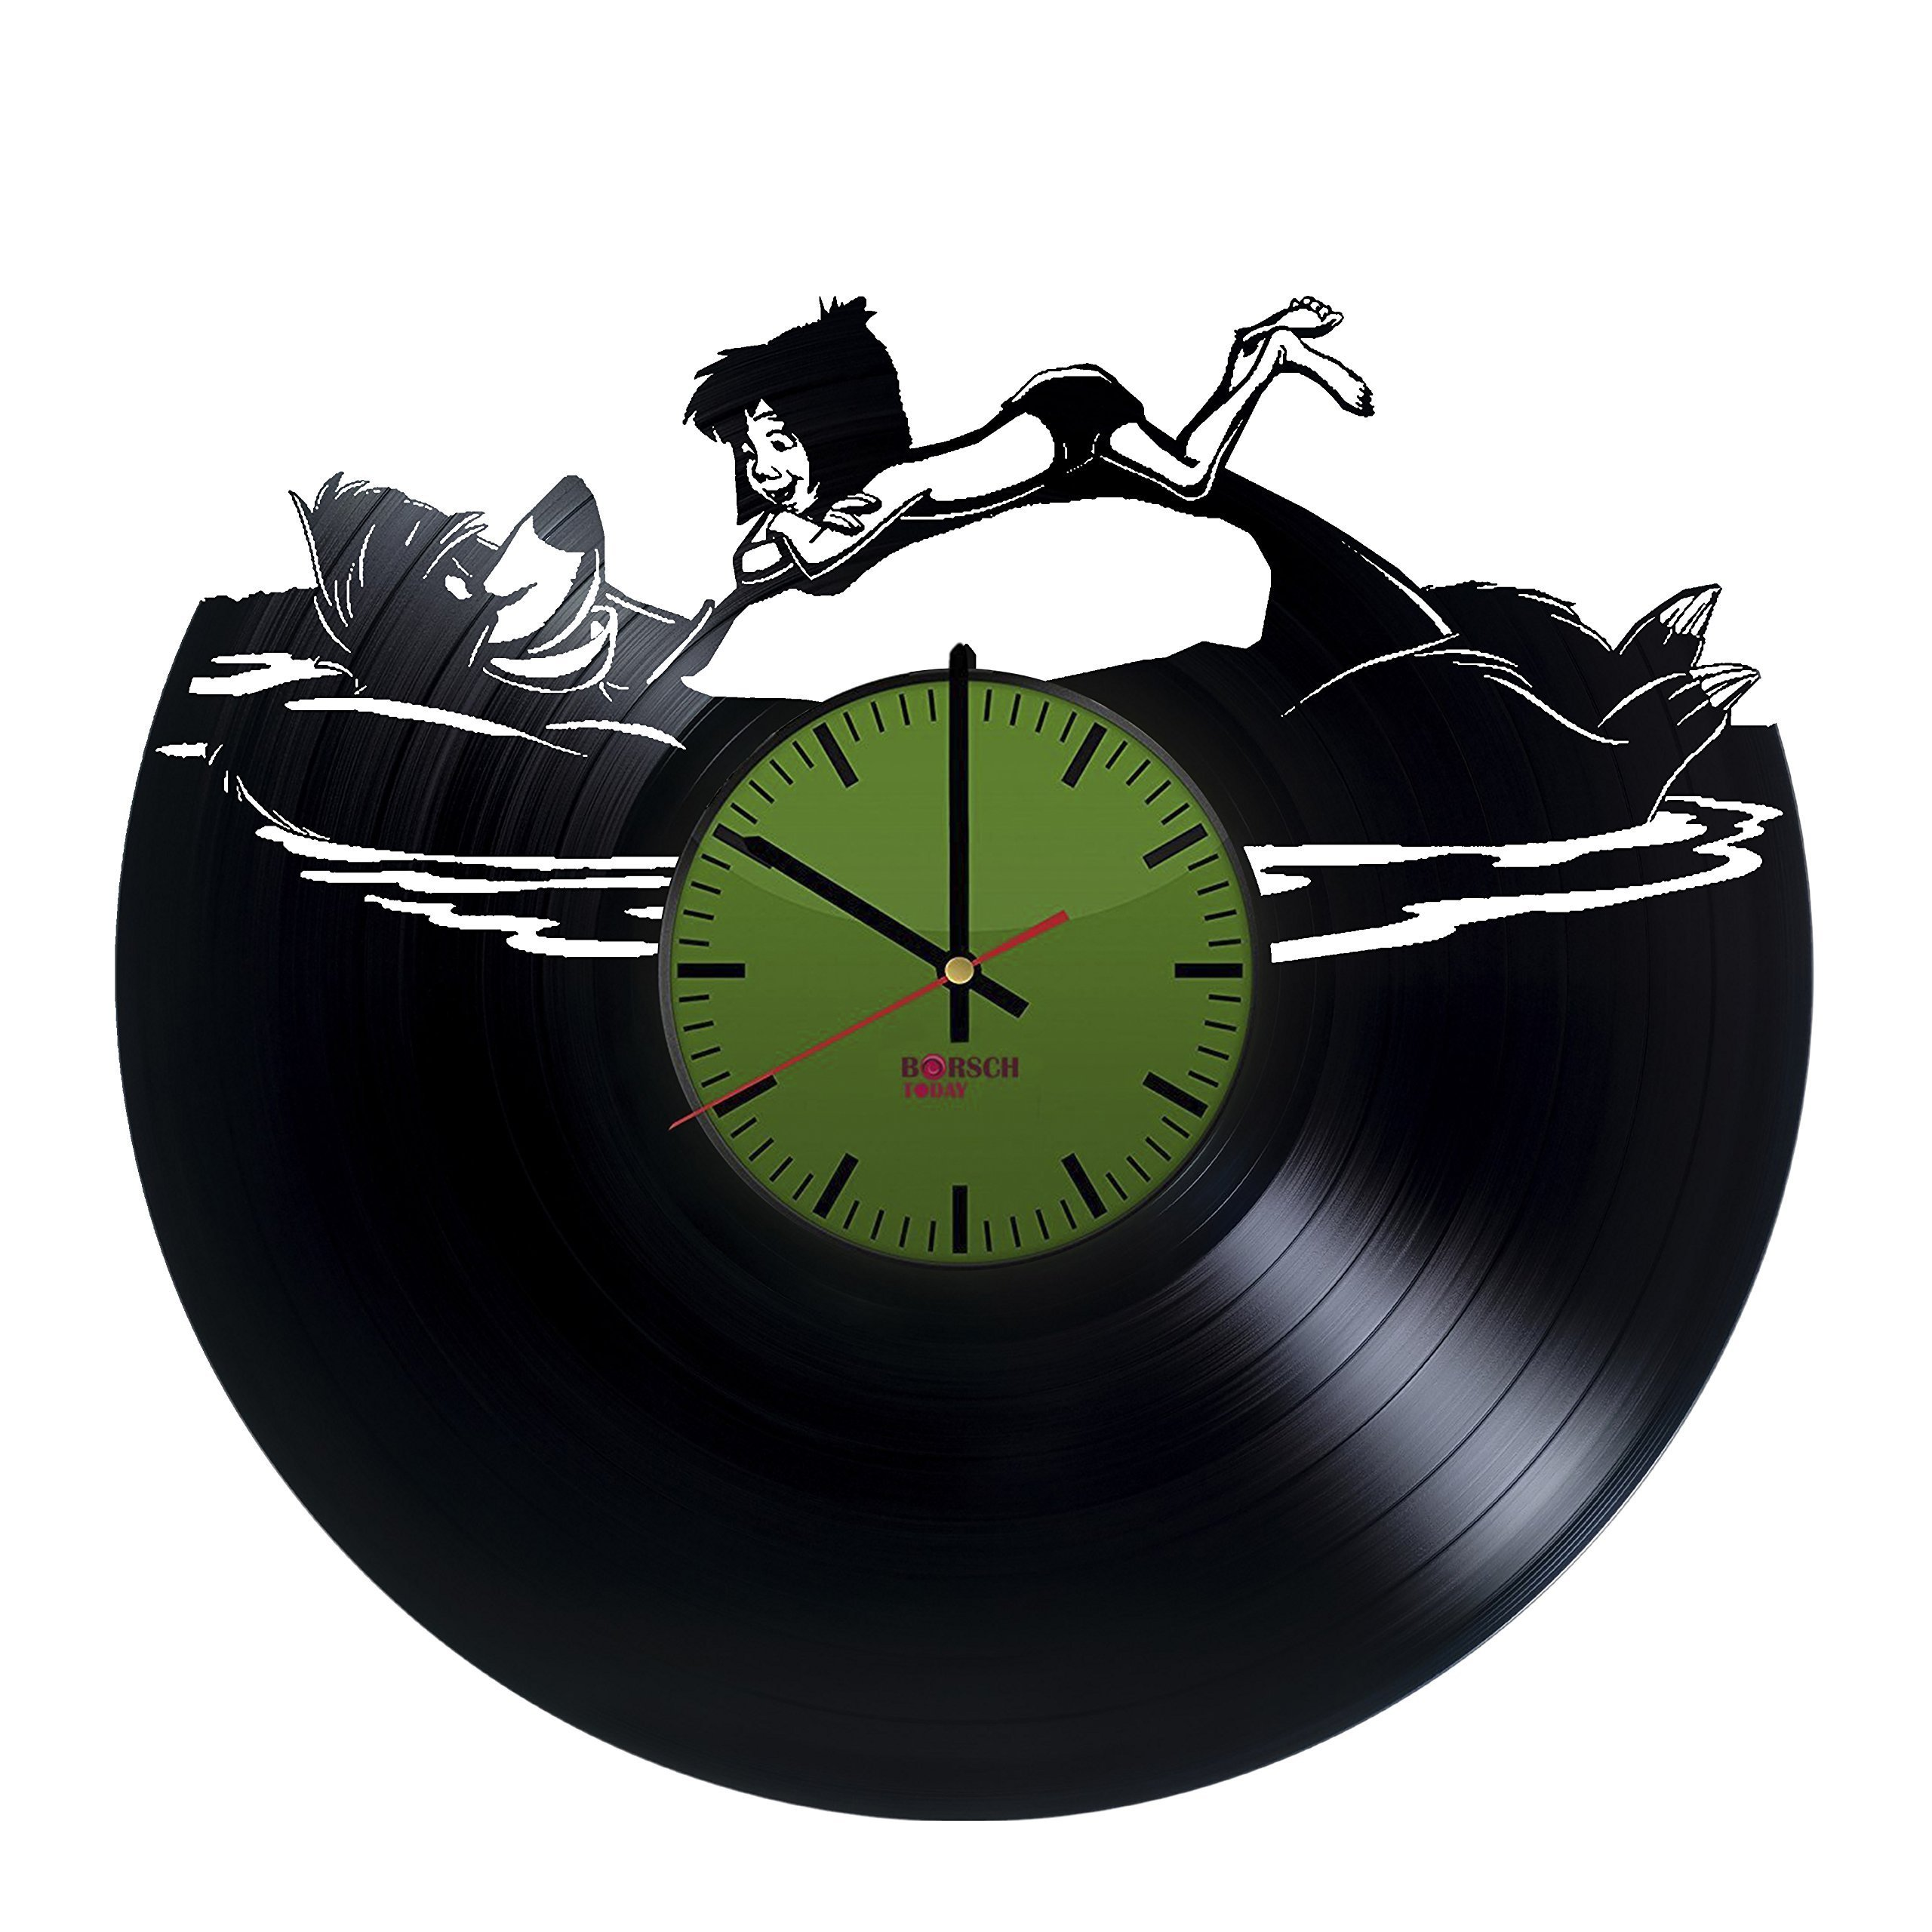 Jungle Book Handmade Vinyl Record Wall Clock - Get Unique Bedroom or Nursery Wall Decor - Gift Ideas for Kids and Youth – Movie Characters Unique Modern Art